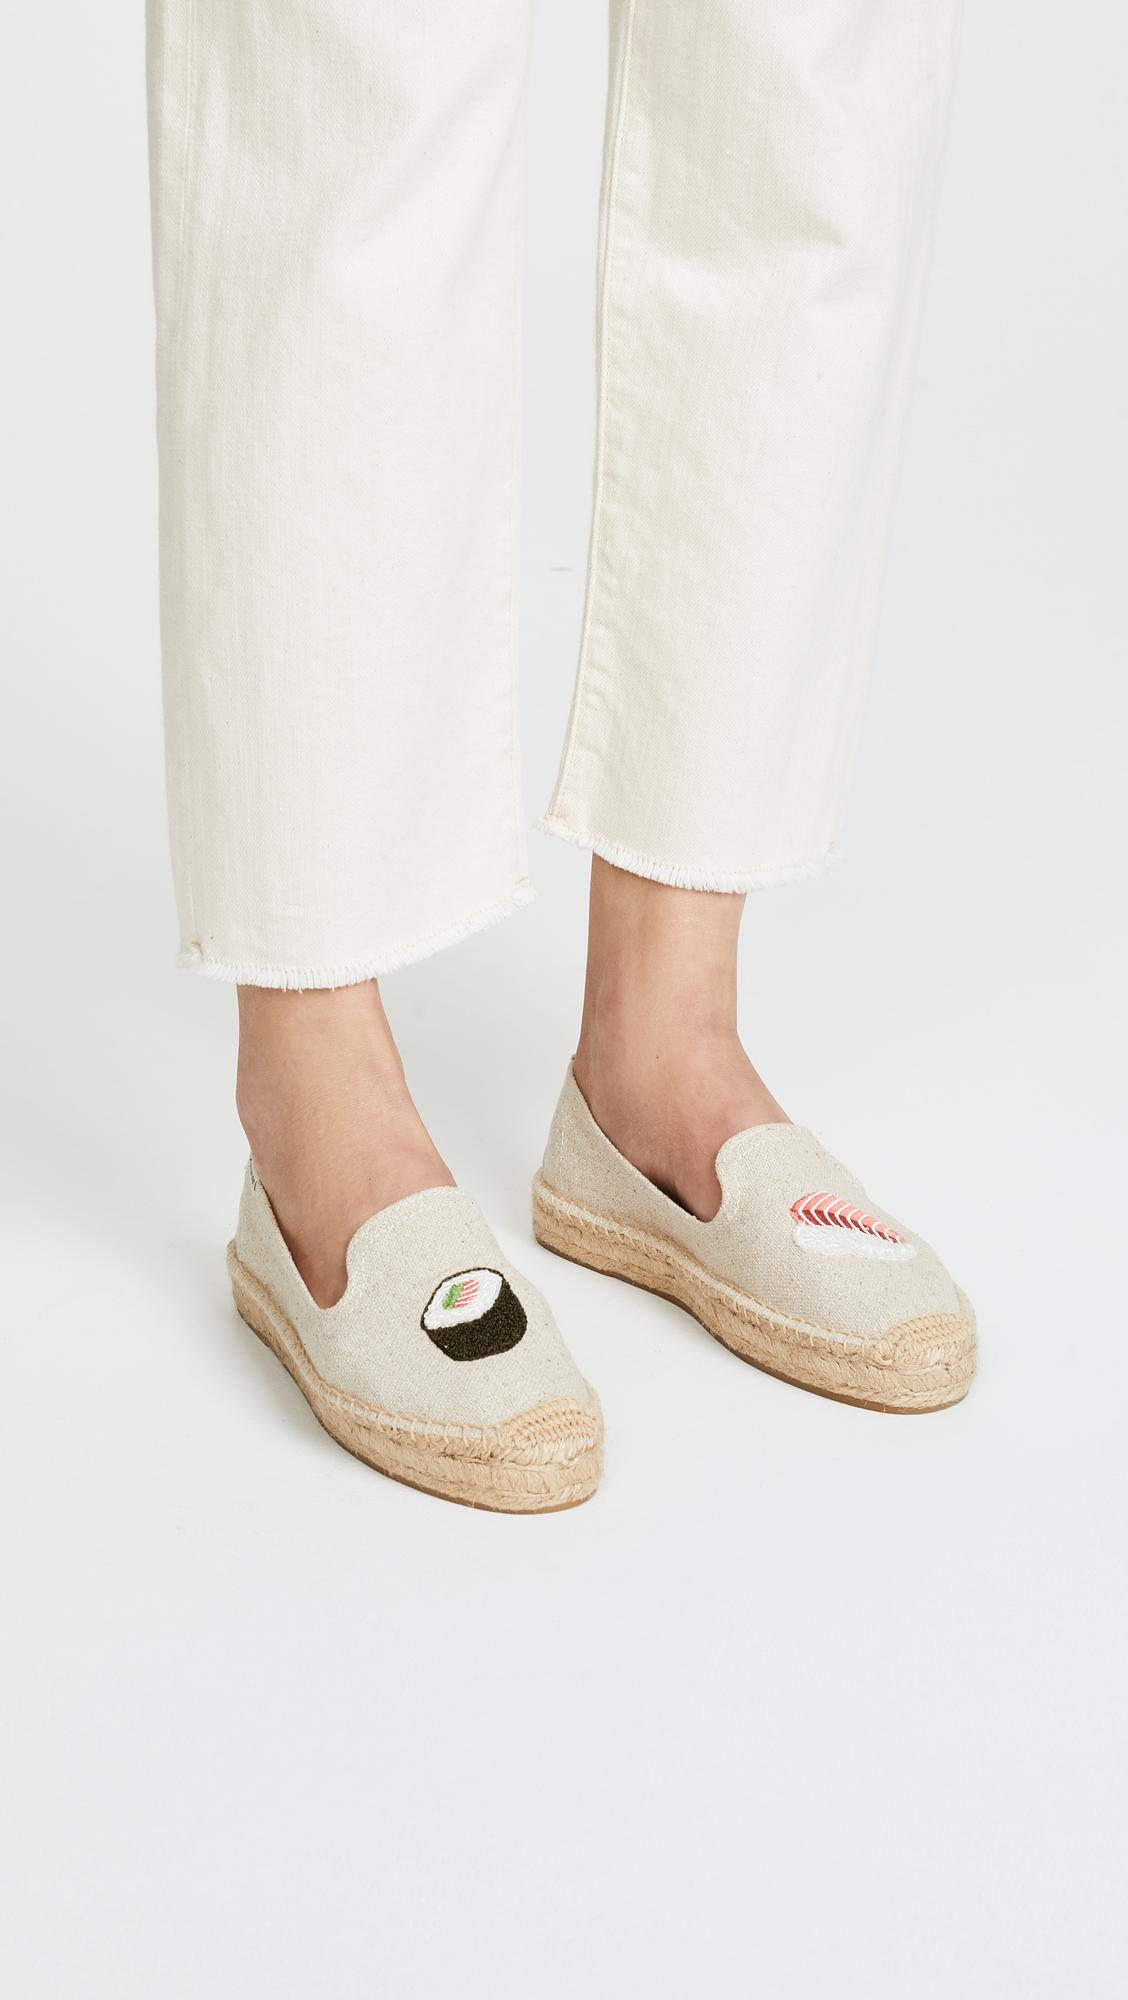 f88c03f3ae14 Lyst - Soludos Sushi Platform Smoking Slippers in Natural